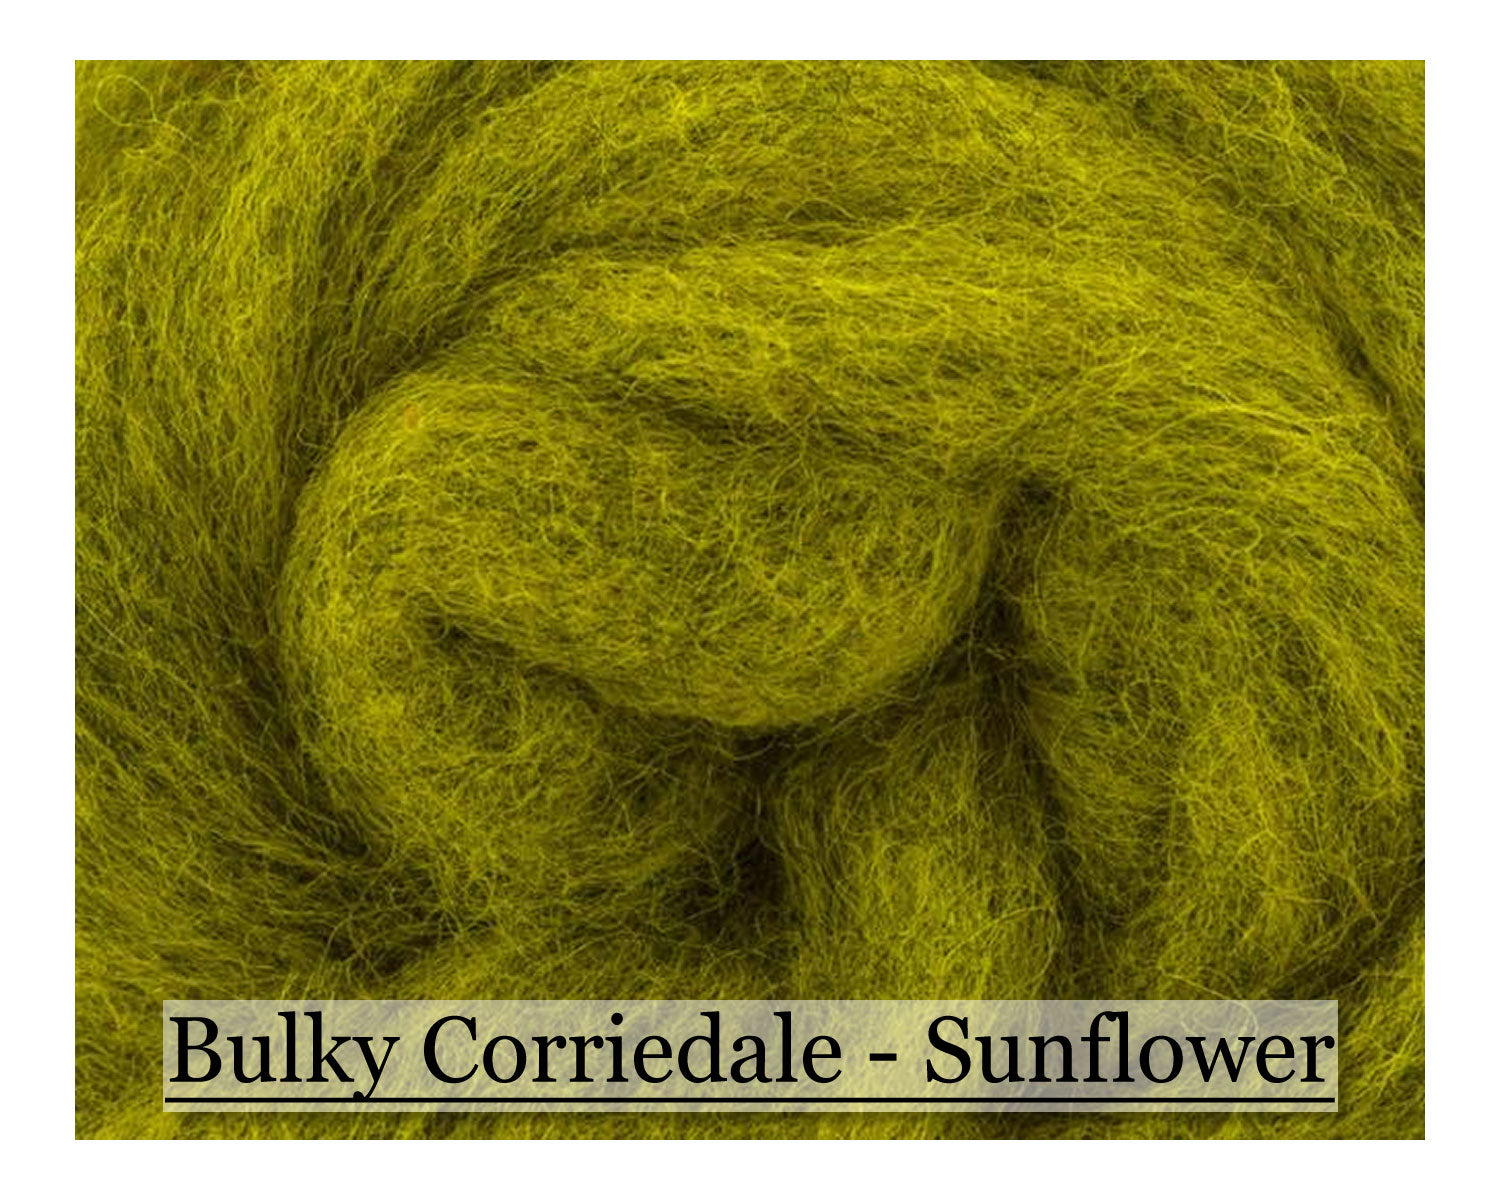 Cartwheel - Bulky Corriedale Wool - 16oz